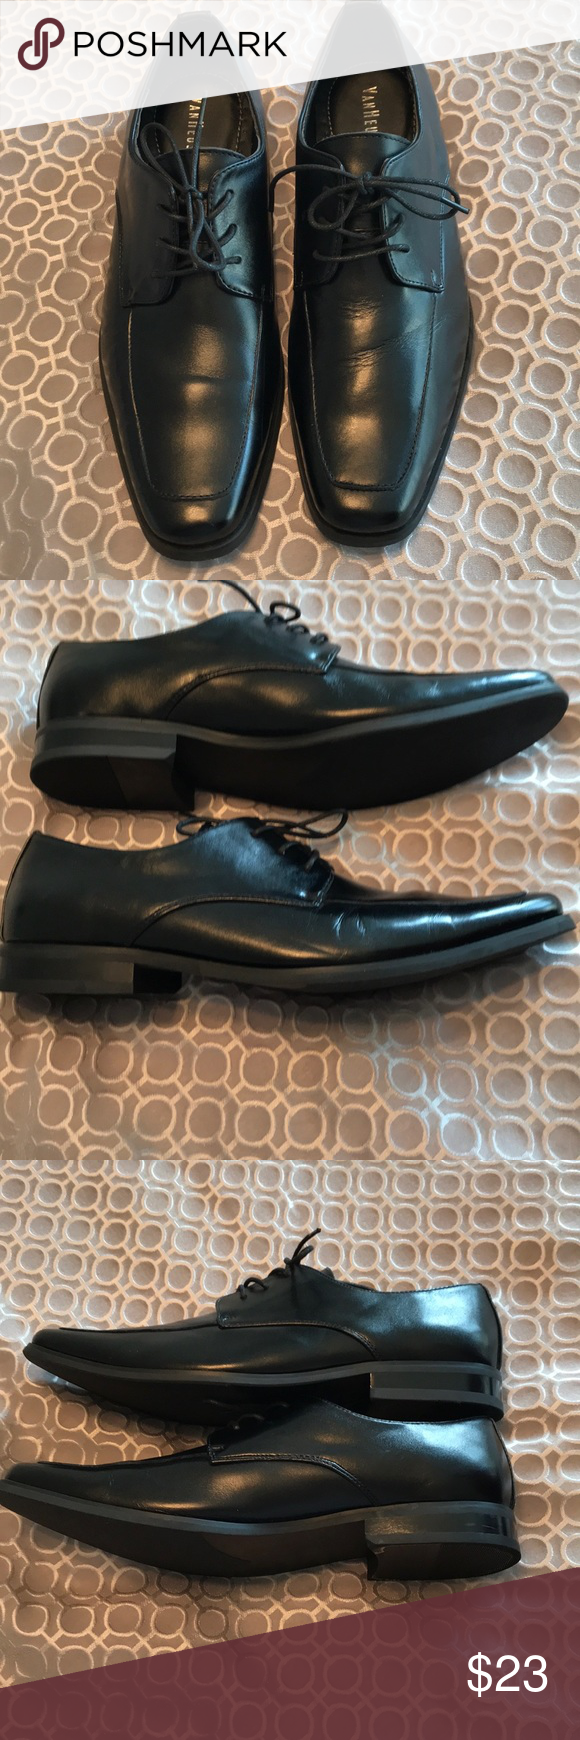 Menus leather dress shoes size in my posh picks